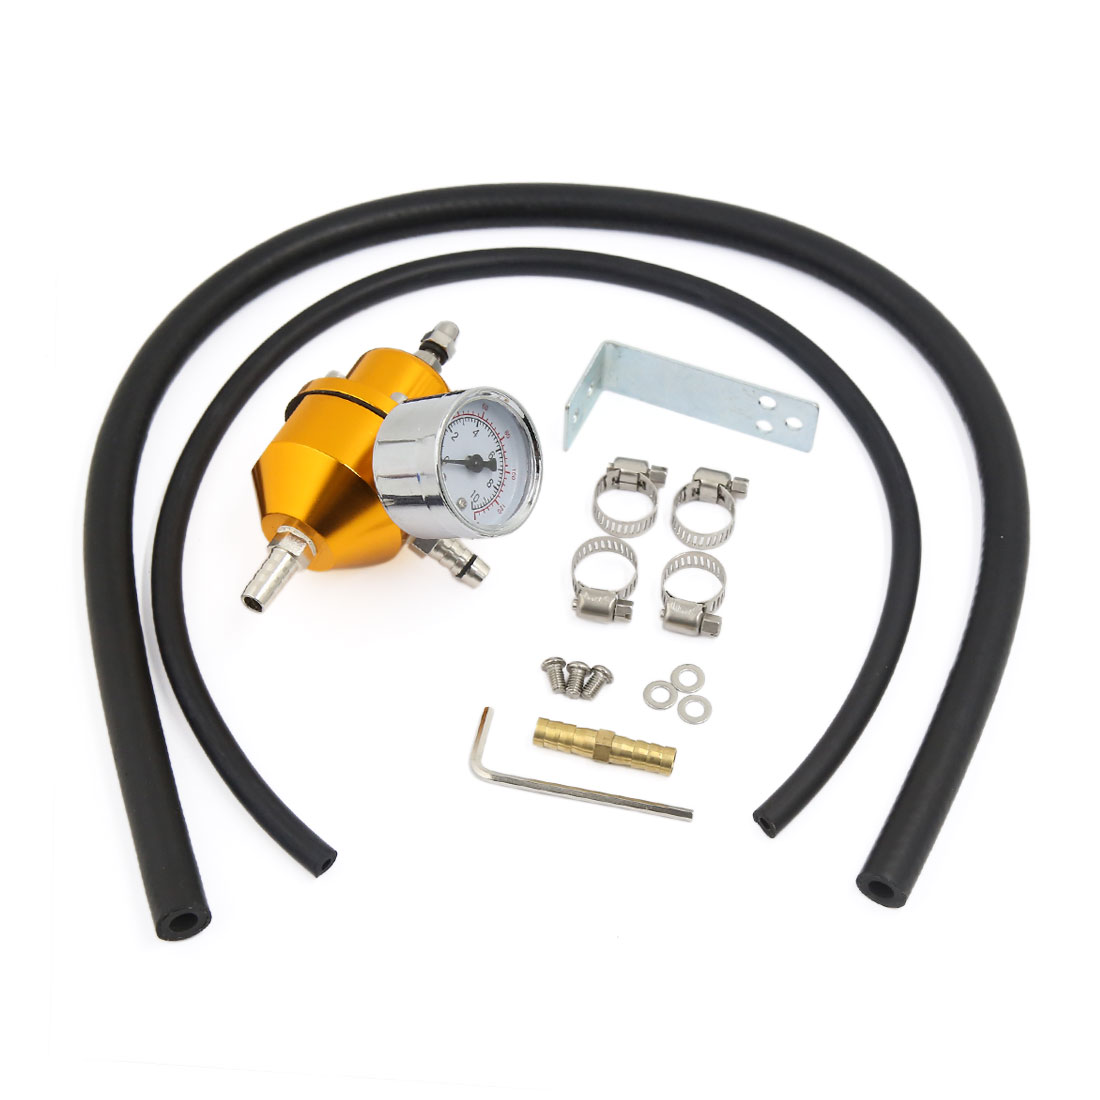 Universal 140 PSI Adjustable 1:1 Fuel Pressure Regulator Gauge Hose Kit Gold Tone for Car